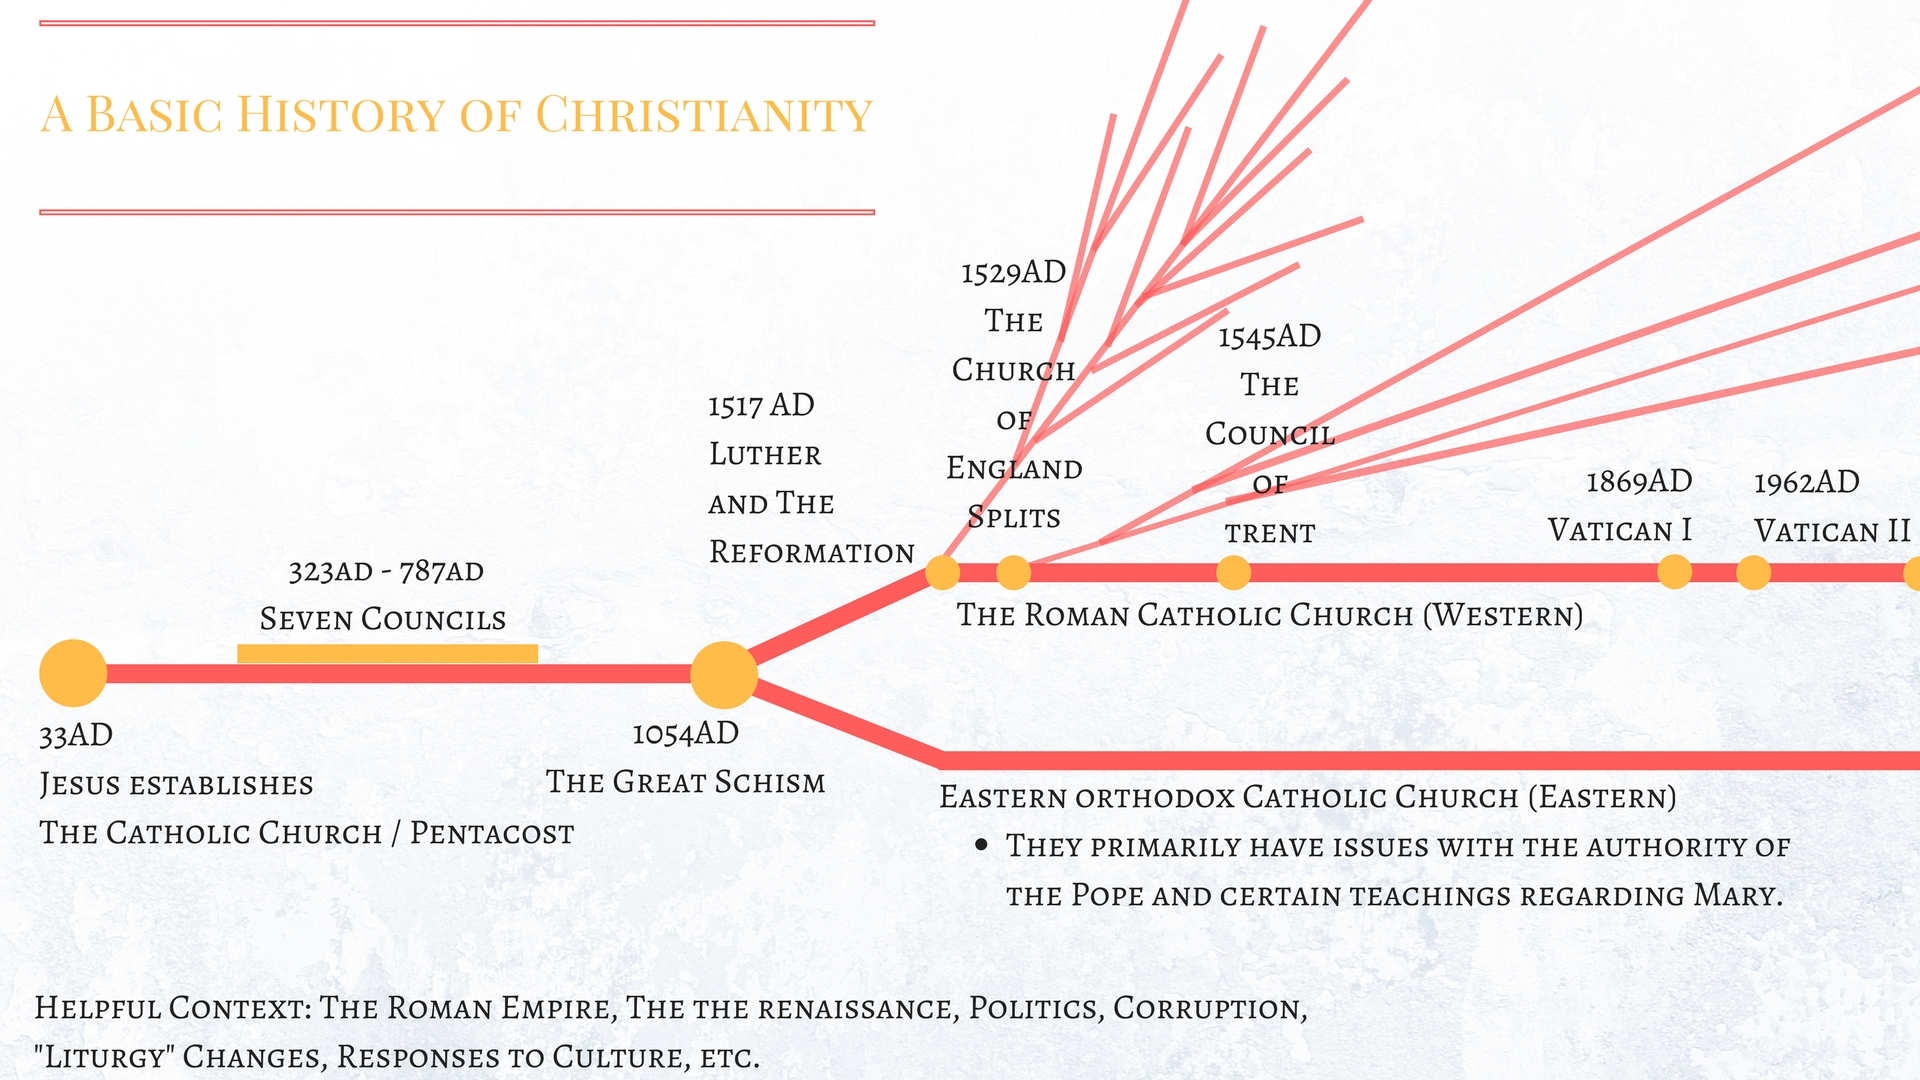 A Basic History of Christianity